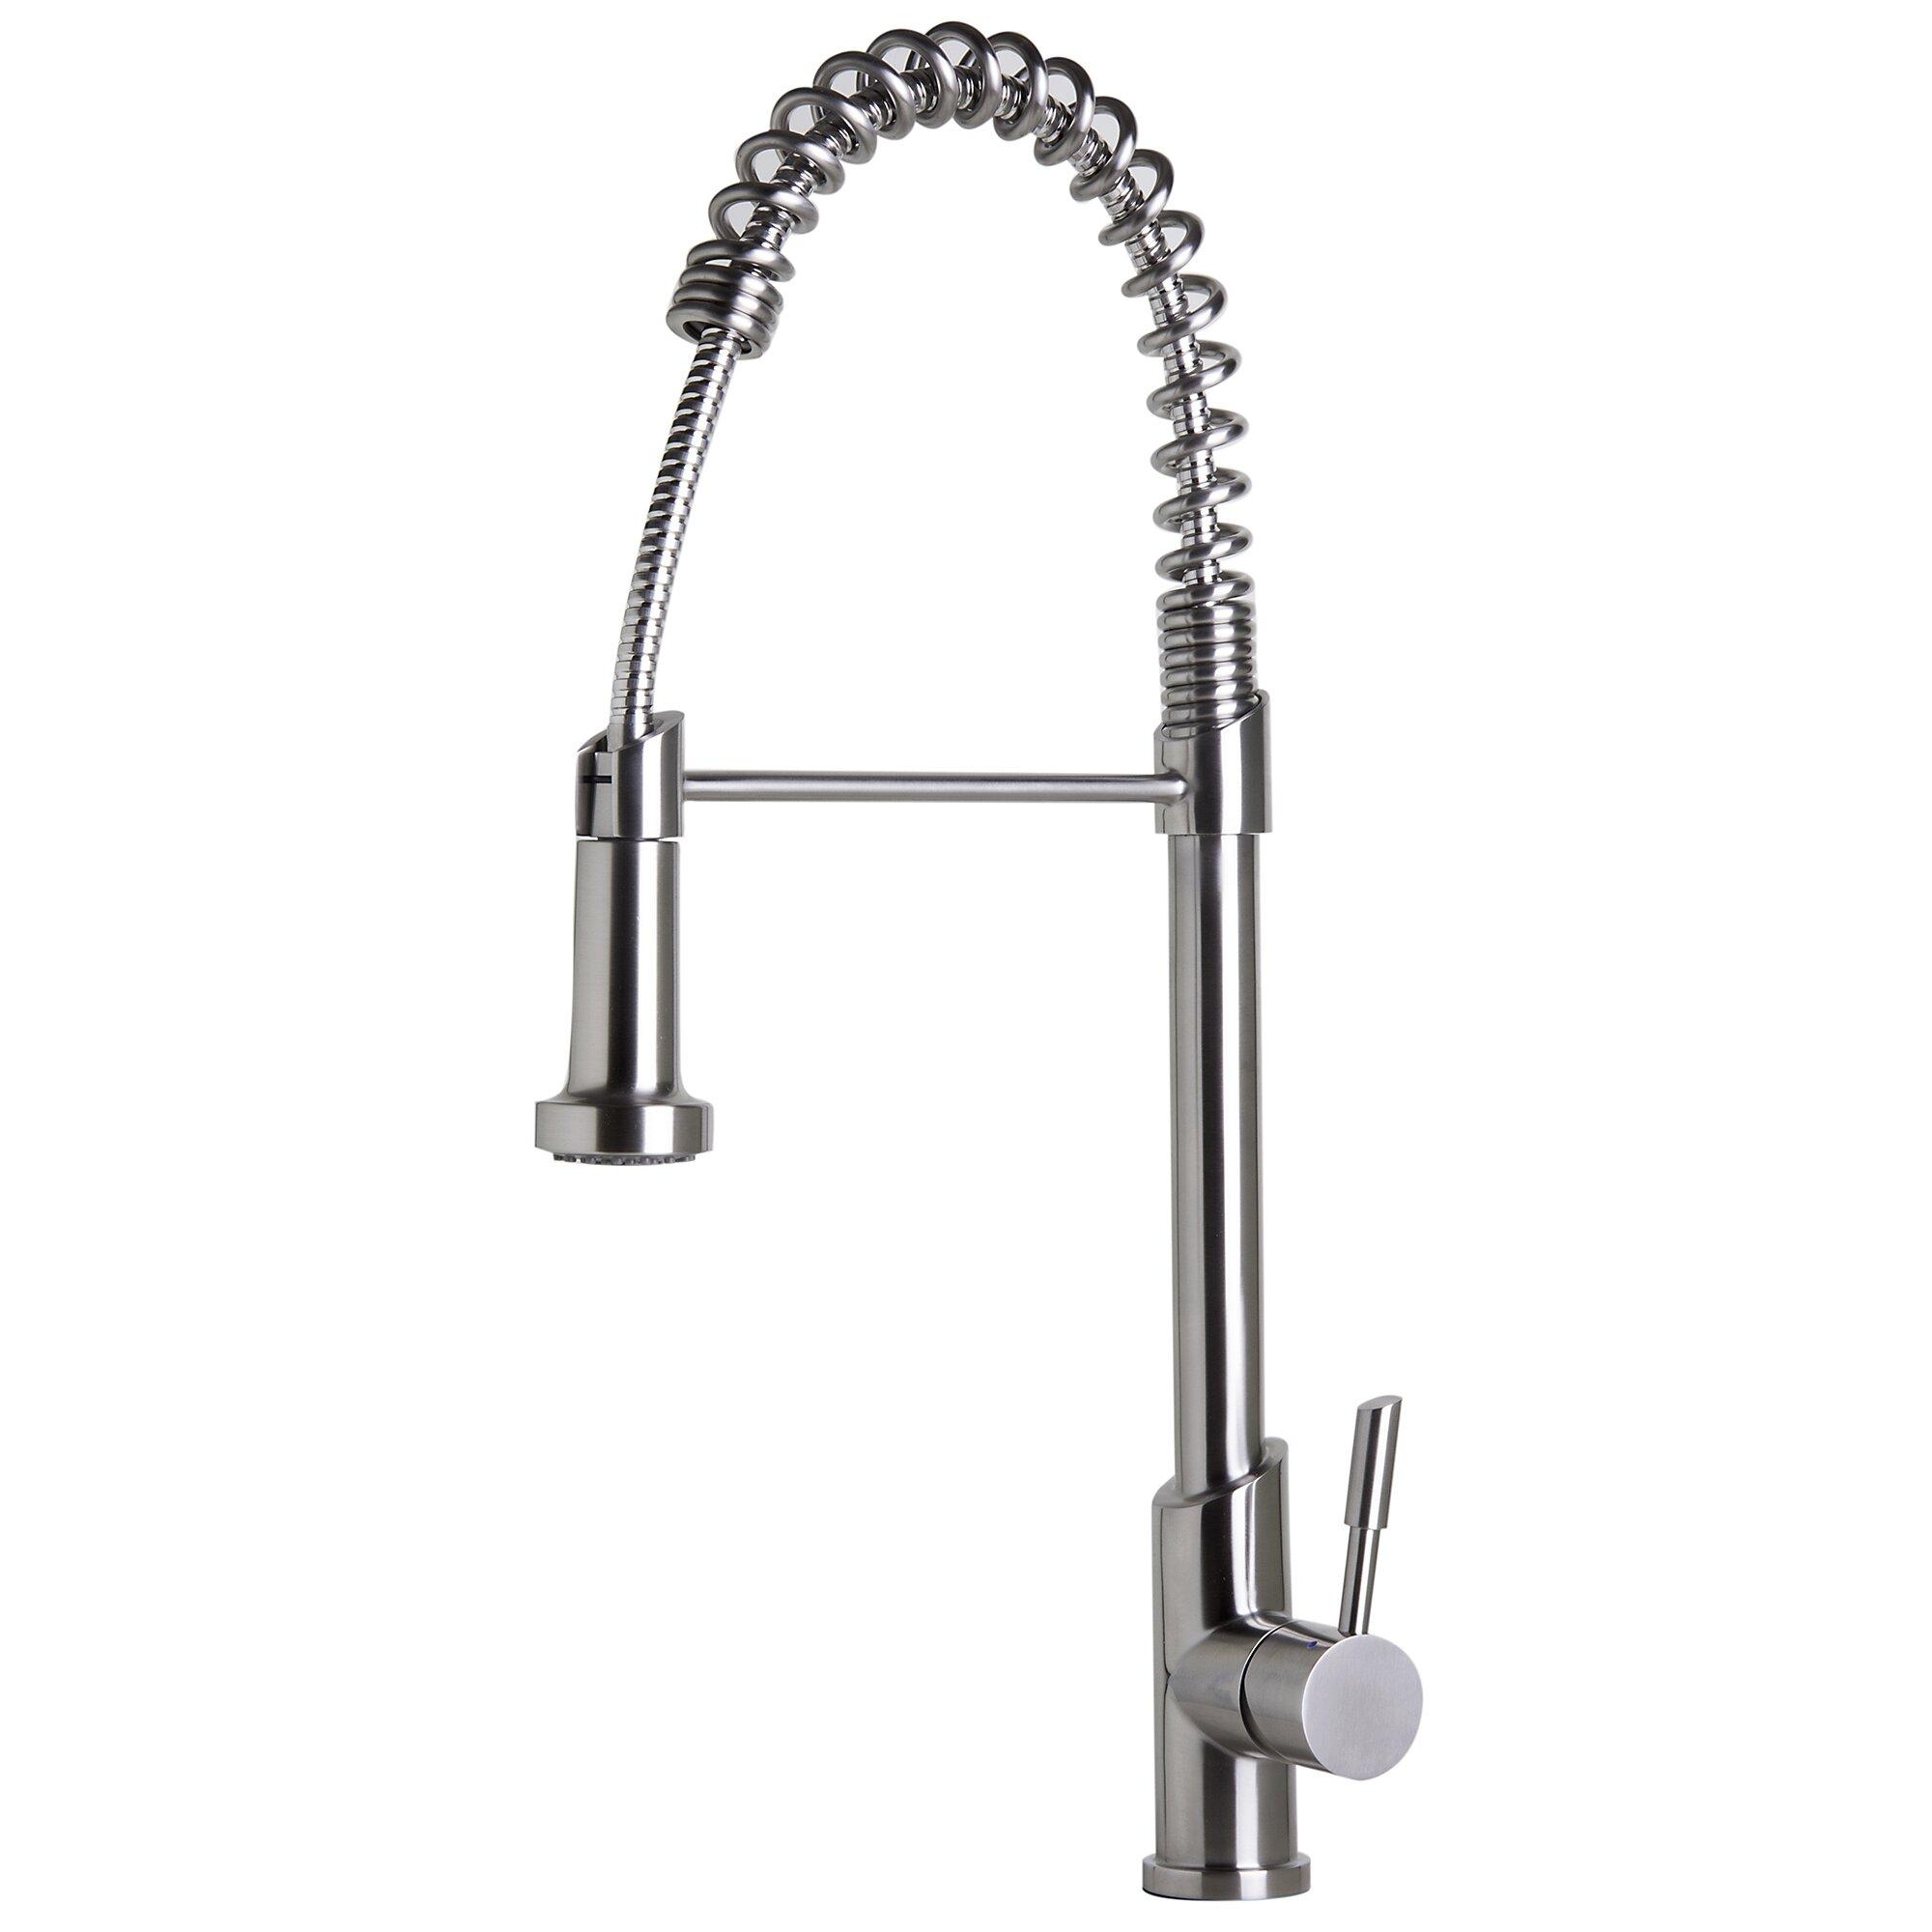 3 Hole Bathroom Faucet. Image Result For 3 Hole Bathroom Faucet